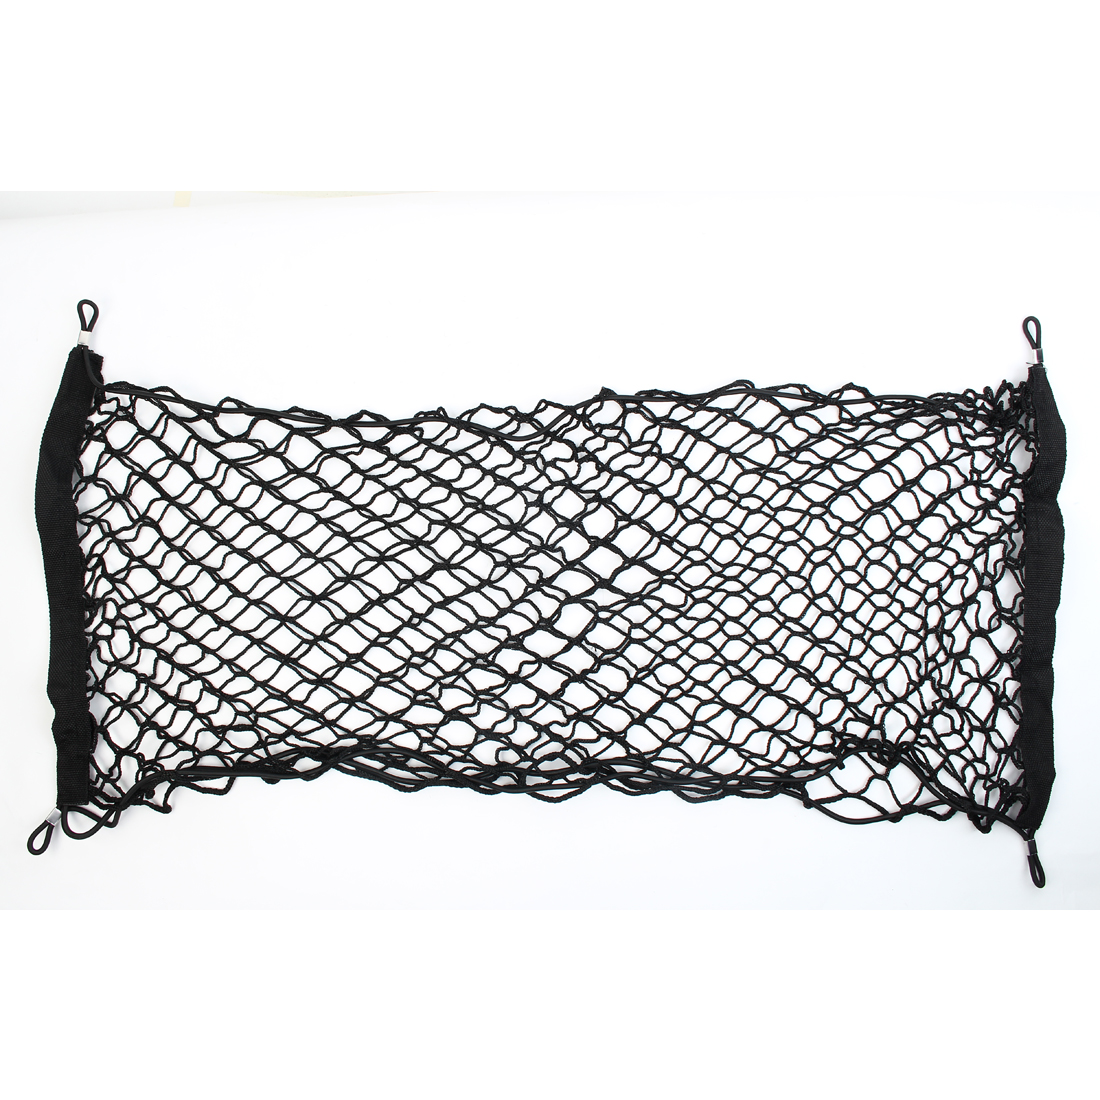 100cm x 60cm Black Car Auto Rear Trunk Cargo Luggage Mesh Net Holder